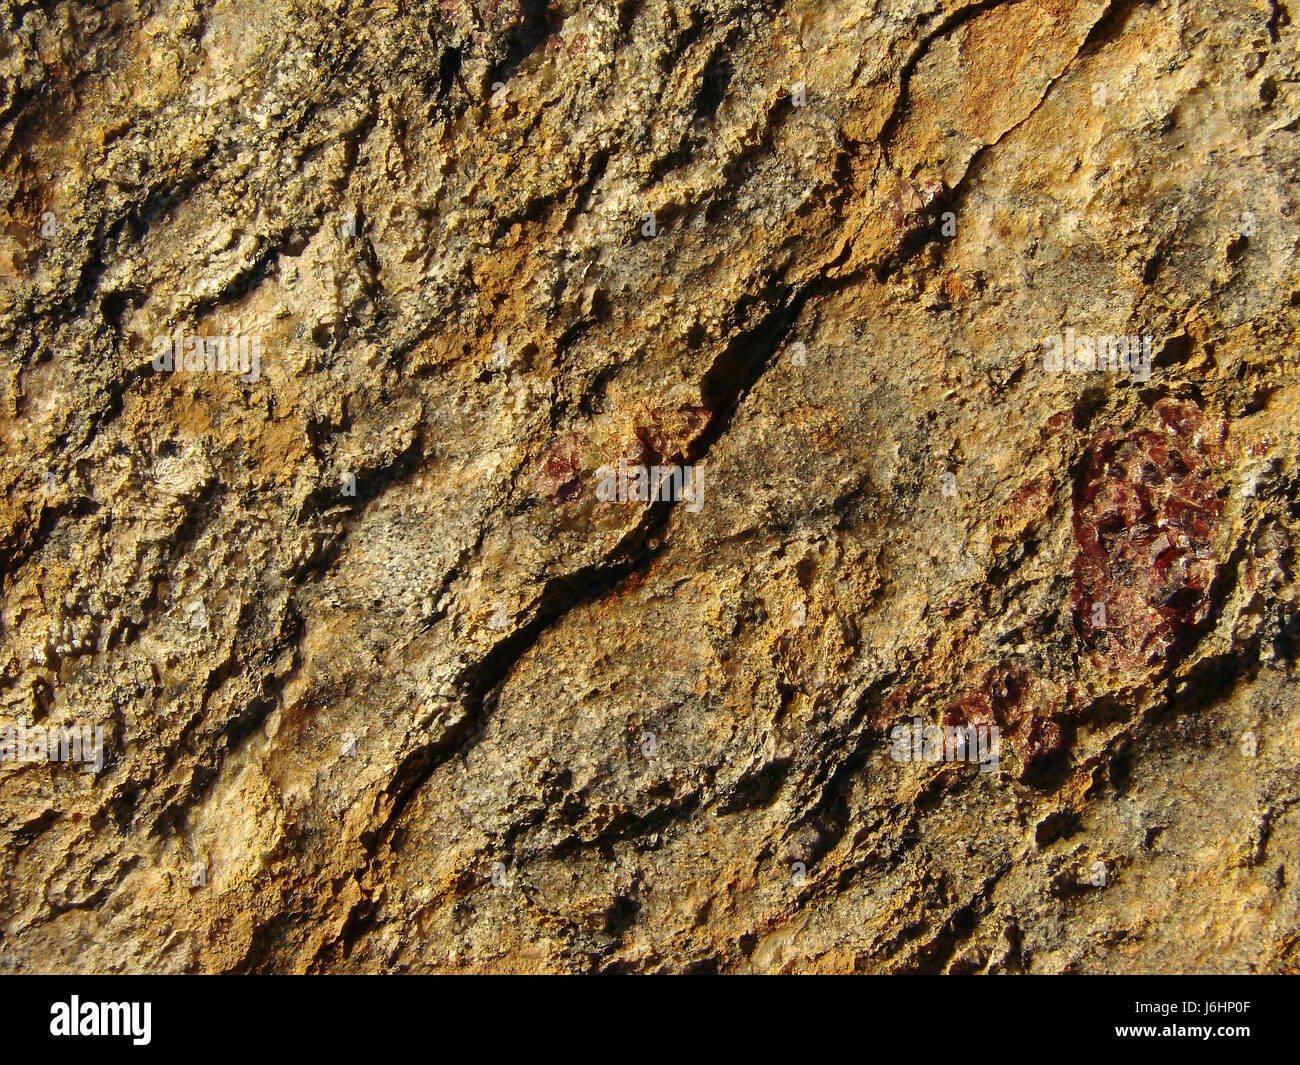 stone rock golden surface relief abstract wallpaper pattern geology solid